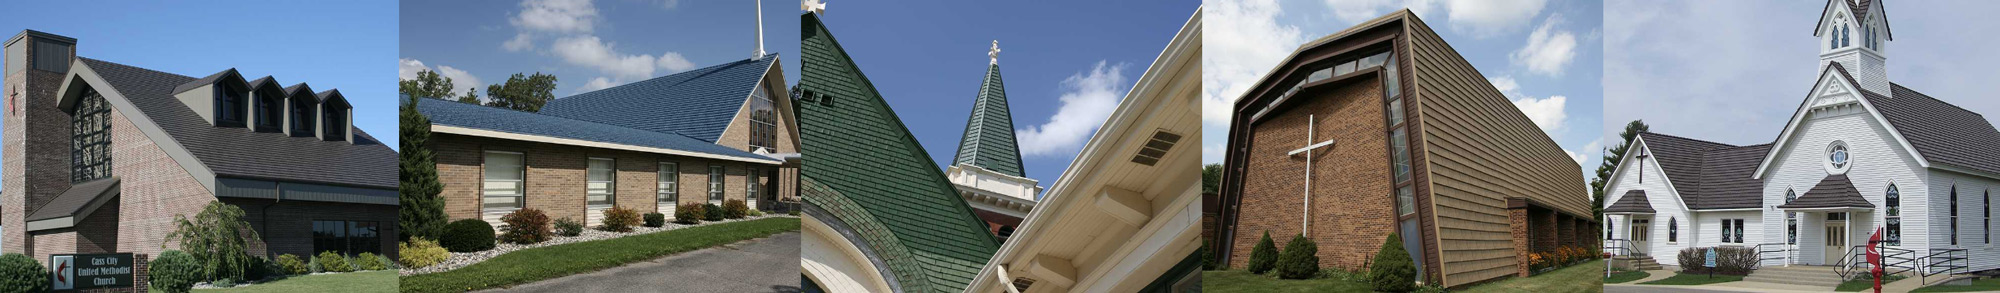 Churches with Metal Roofs